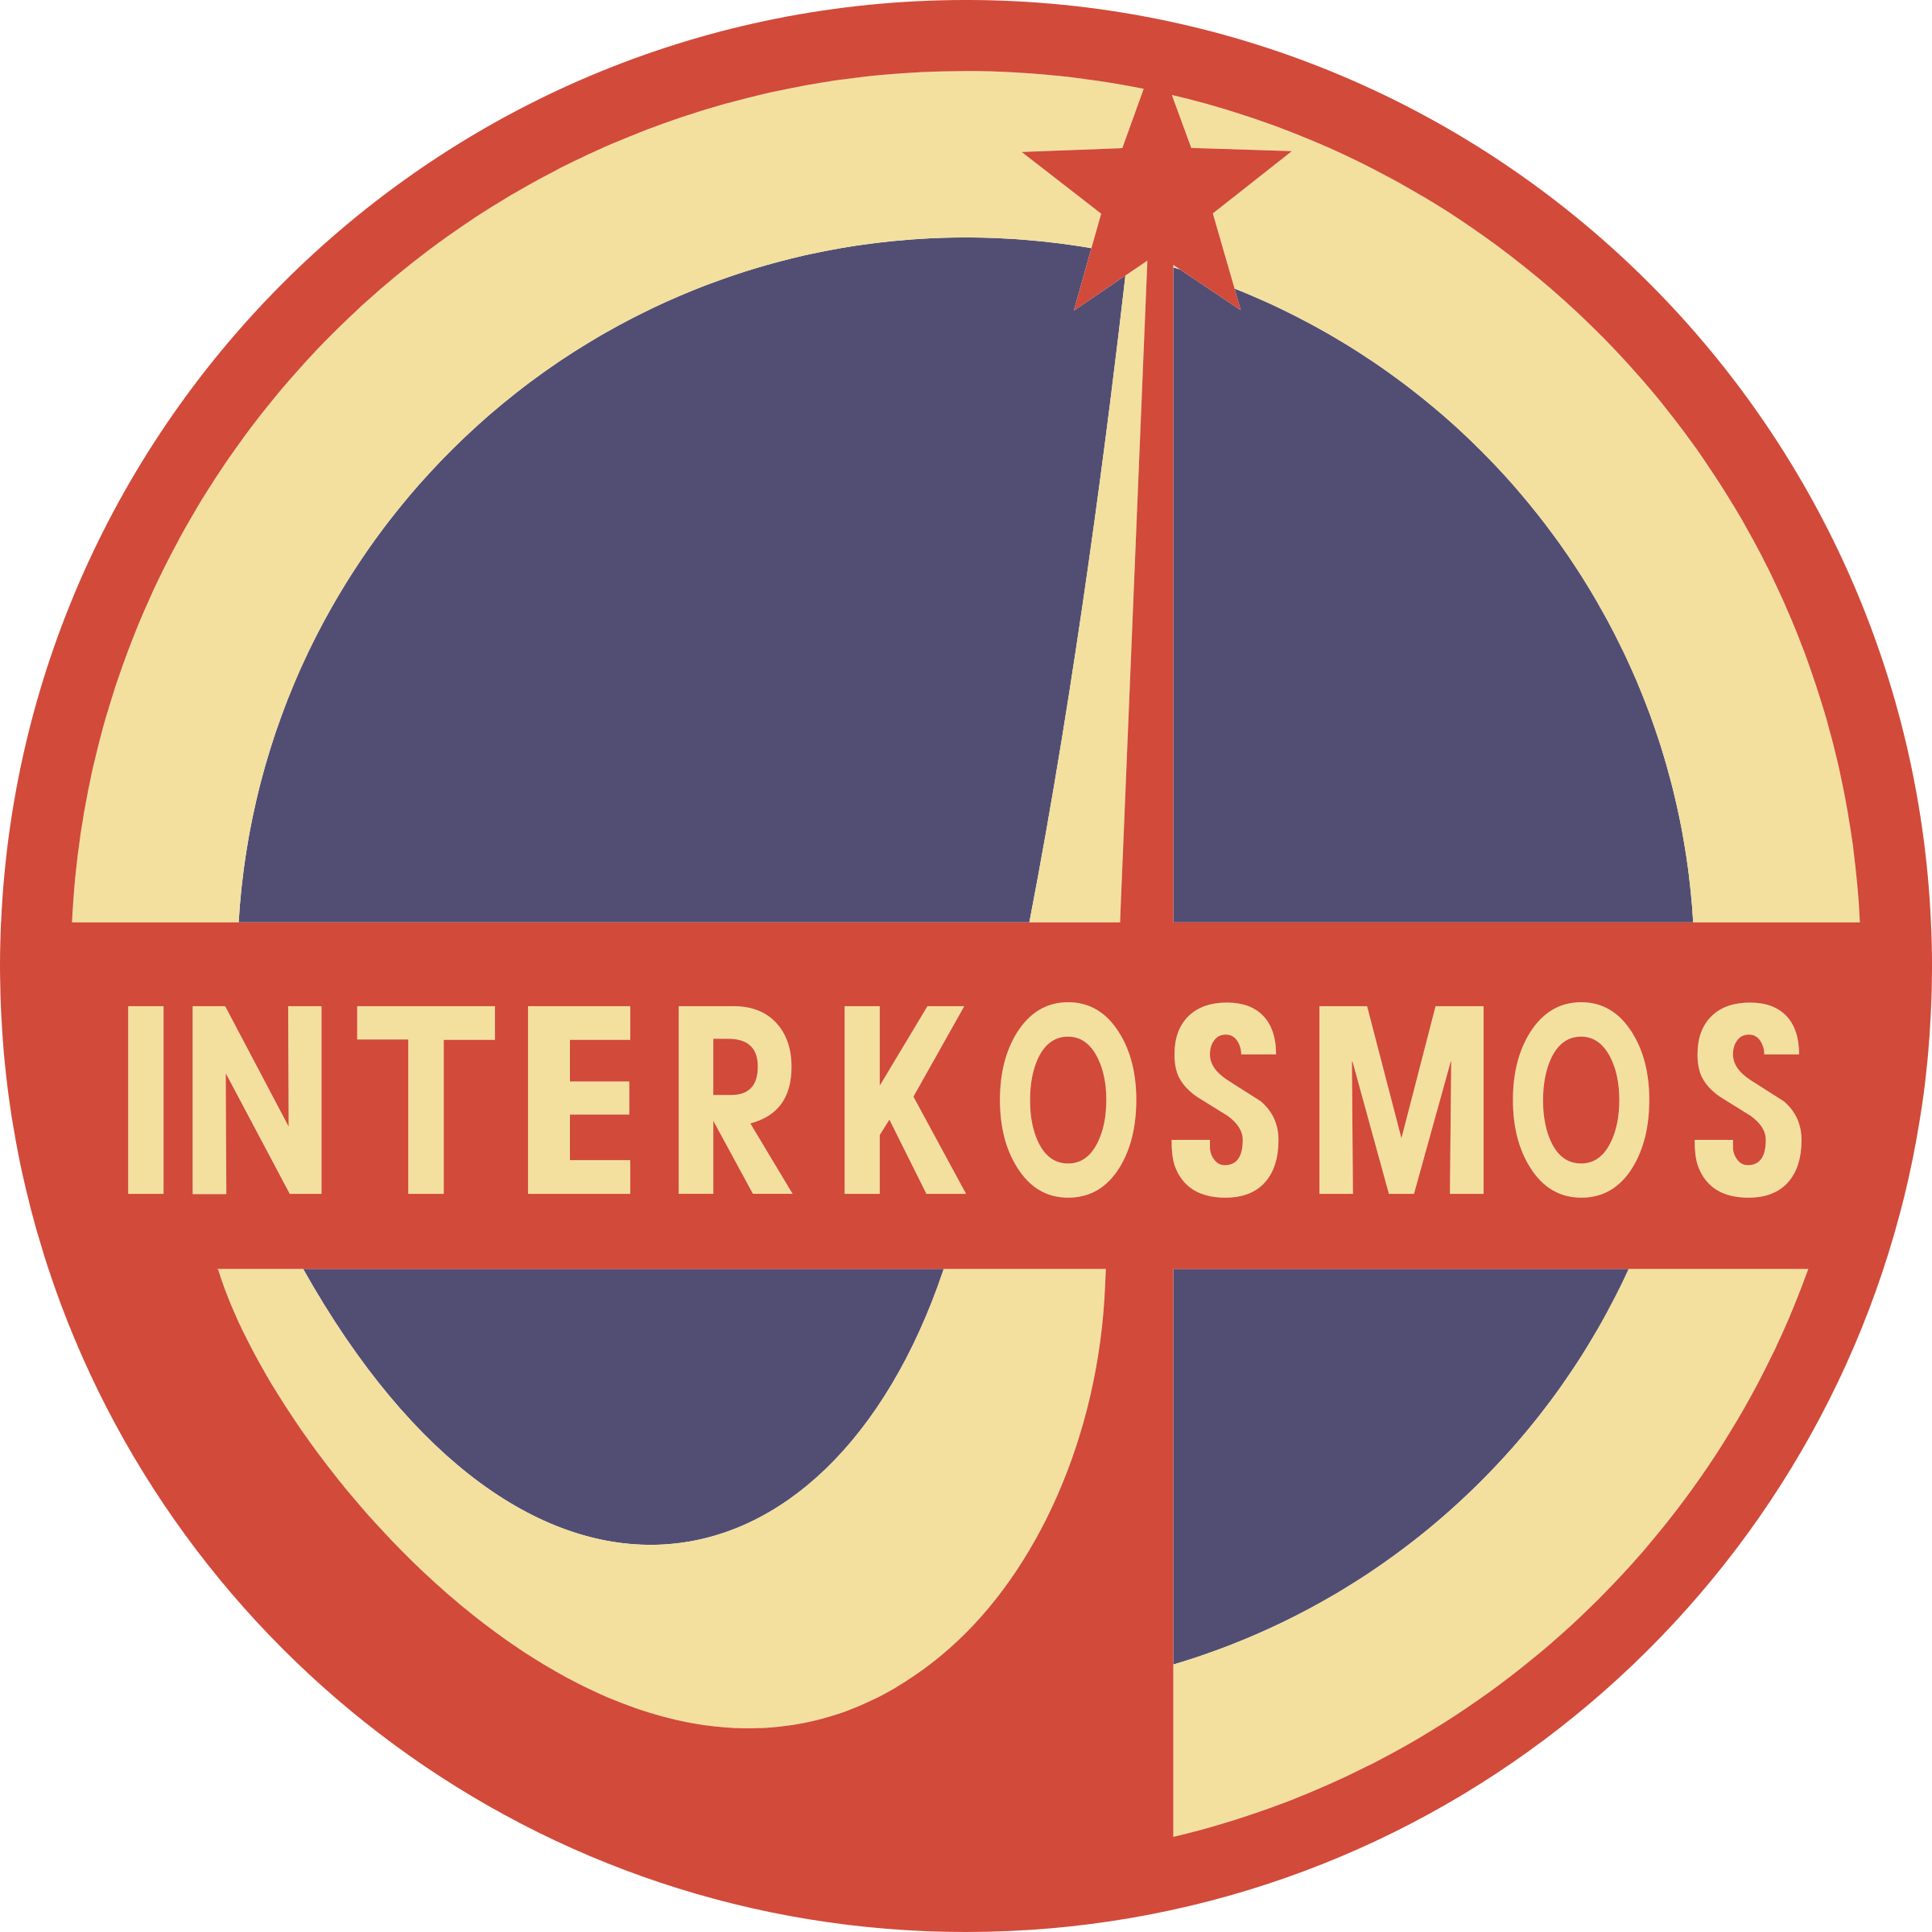 Interkosmos (general emblem) by Rones by rones